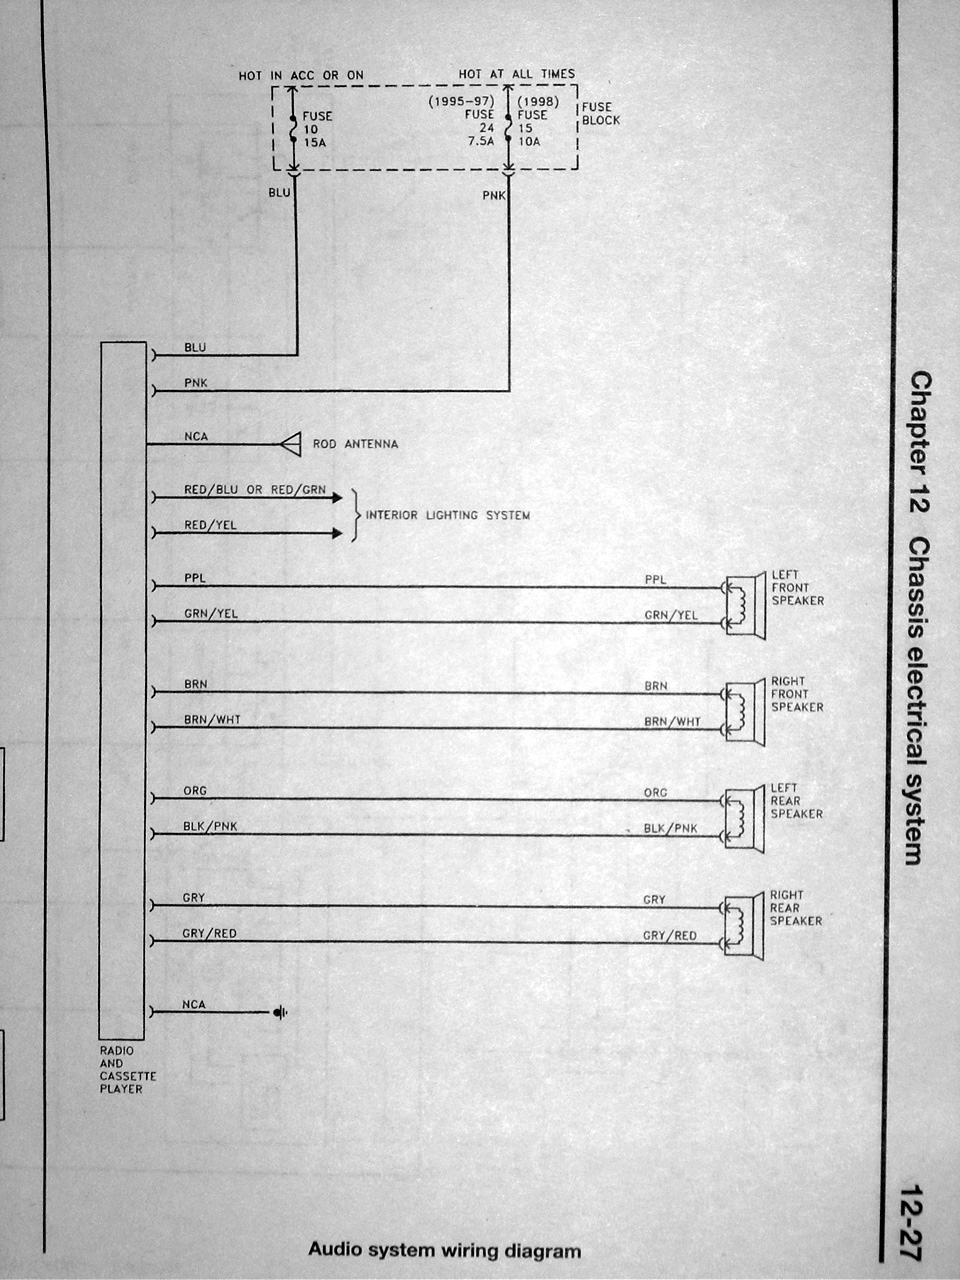 DSC01849 wiring diagram thread *useful info* nissan forum 2003 nissan frontier stereo wiring diagram at nearapp.co